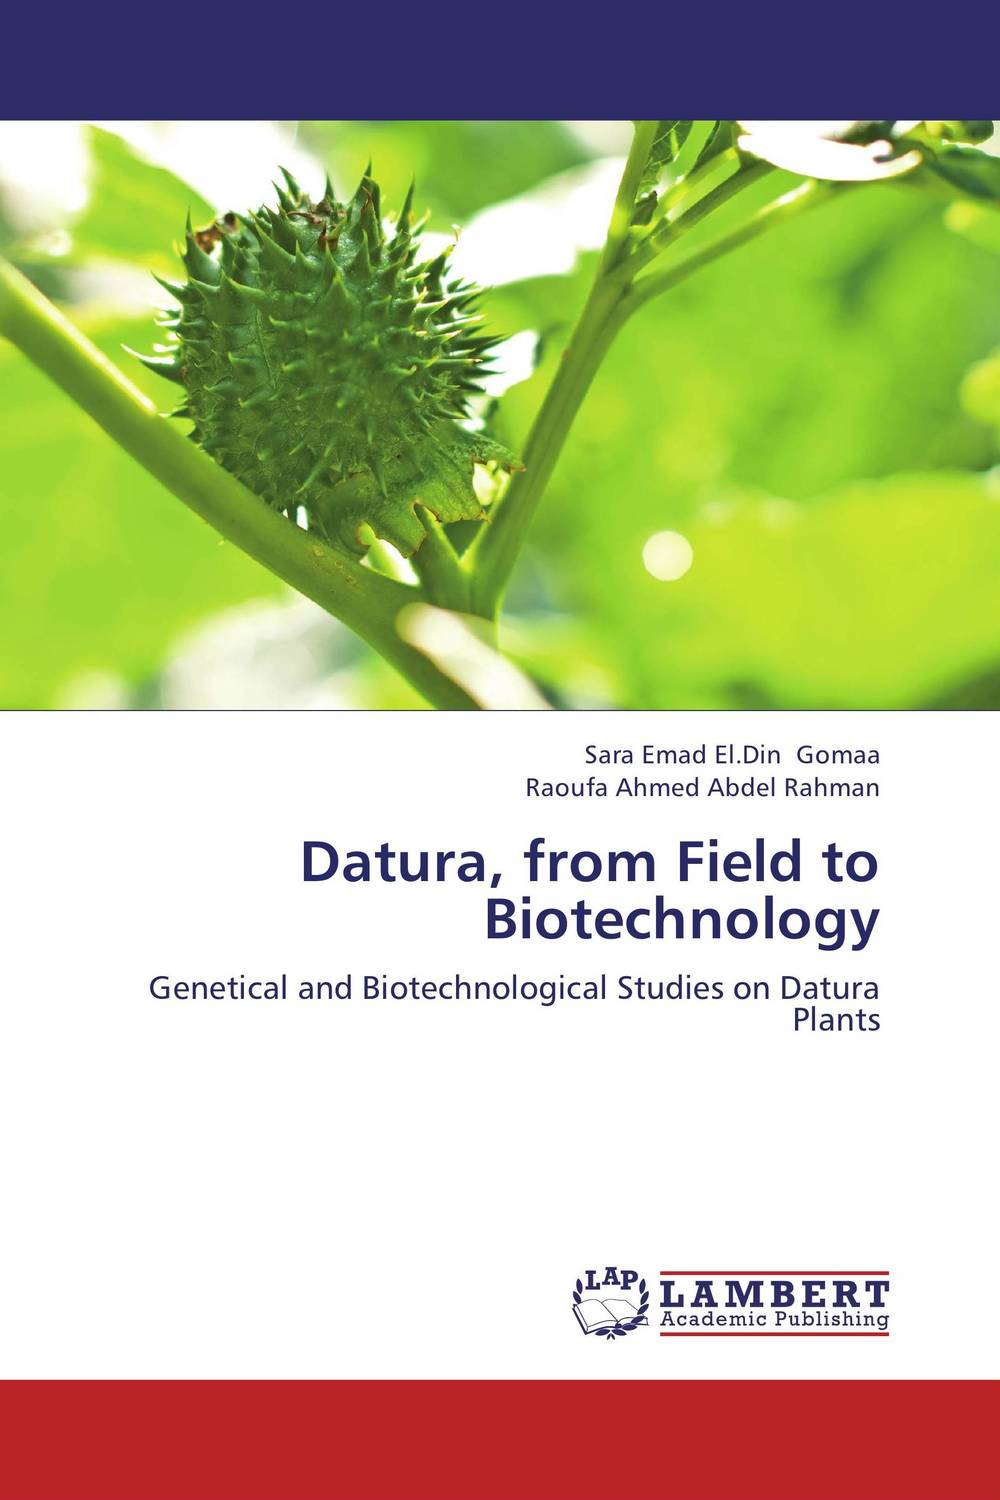 Datura, from Field to Biotechnology adding value to the citrus pulp by enzyme biotechnology production